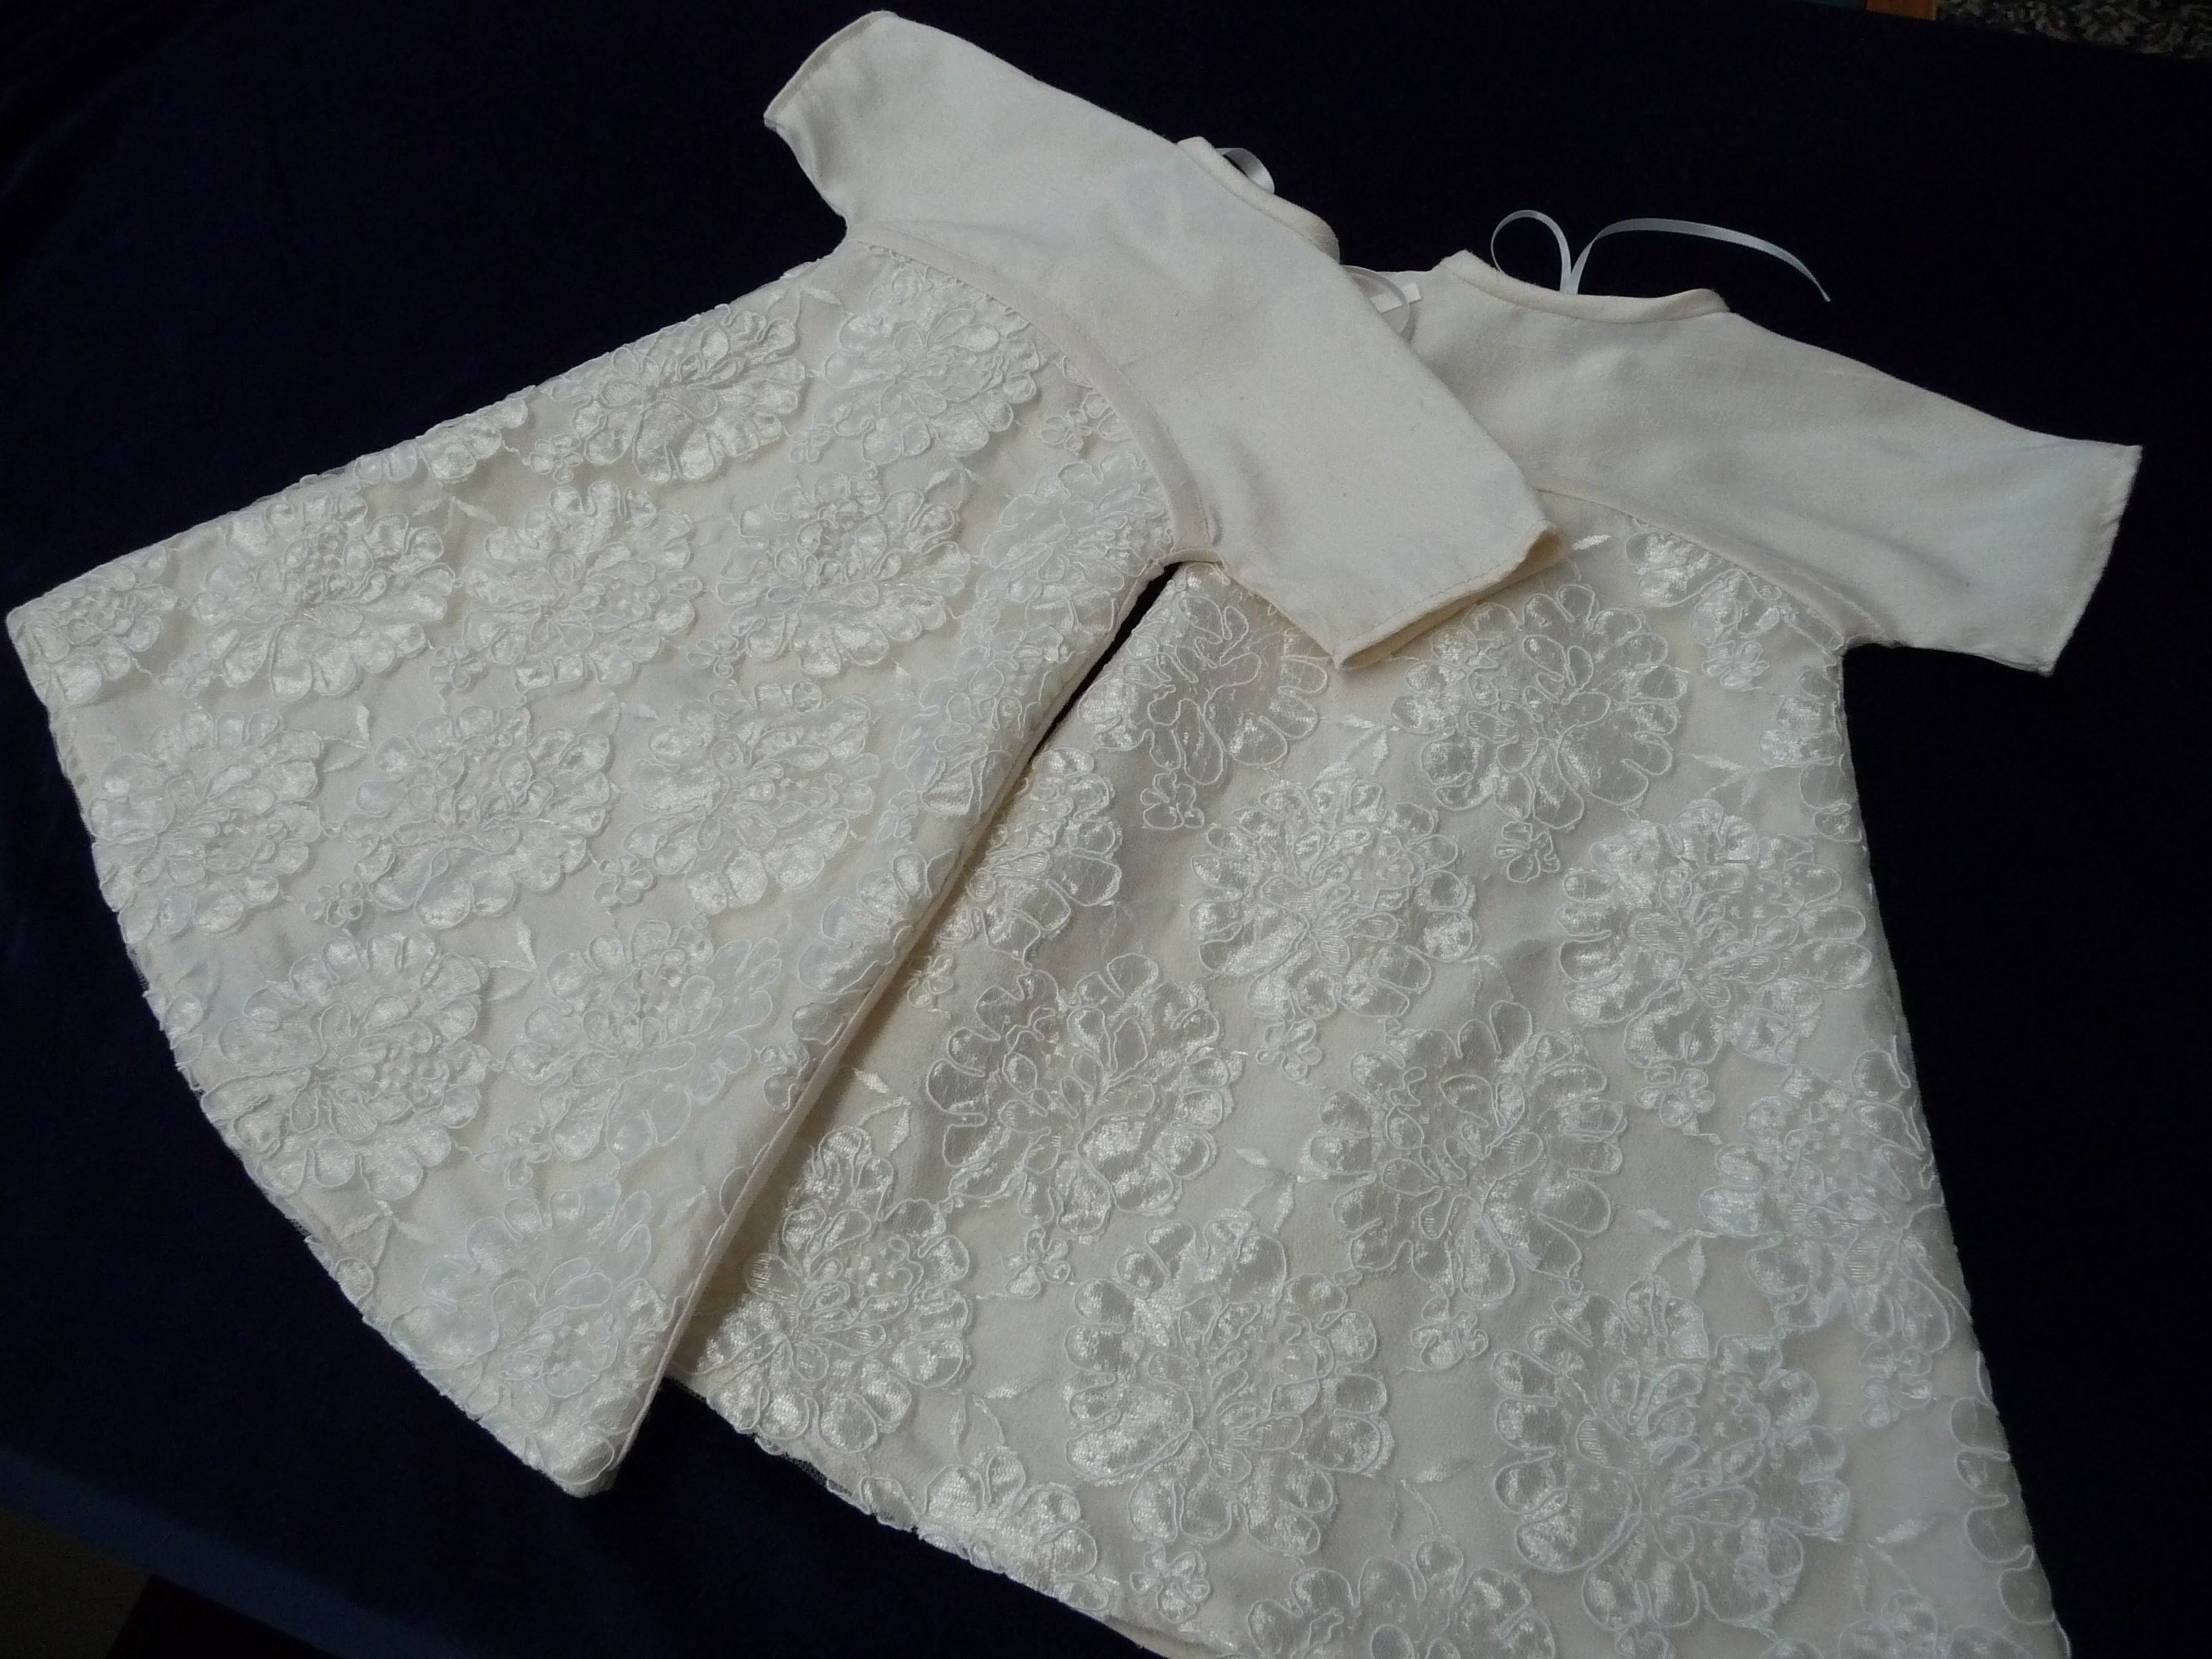 Two Angel gowns made from raw silk fabric with lace overskirt.